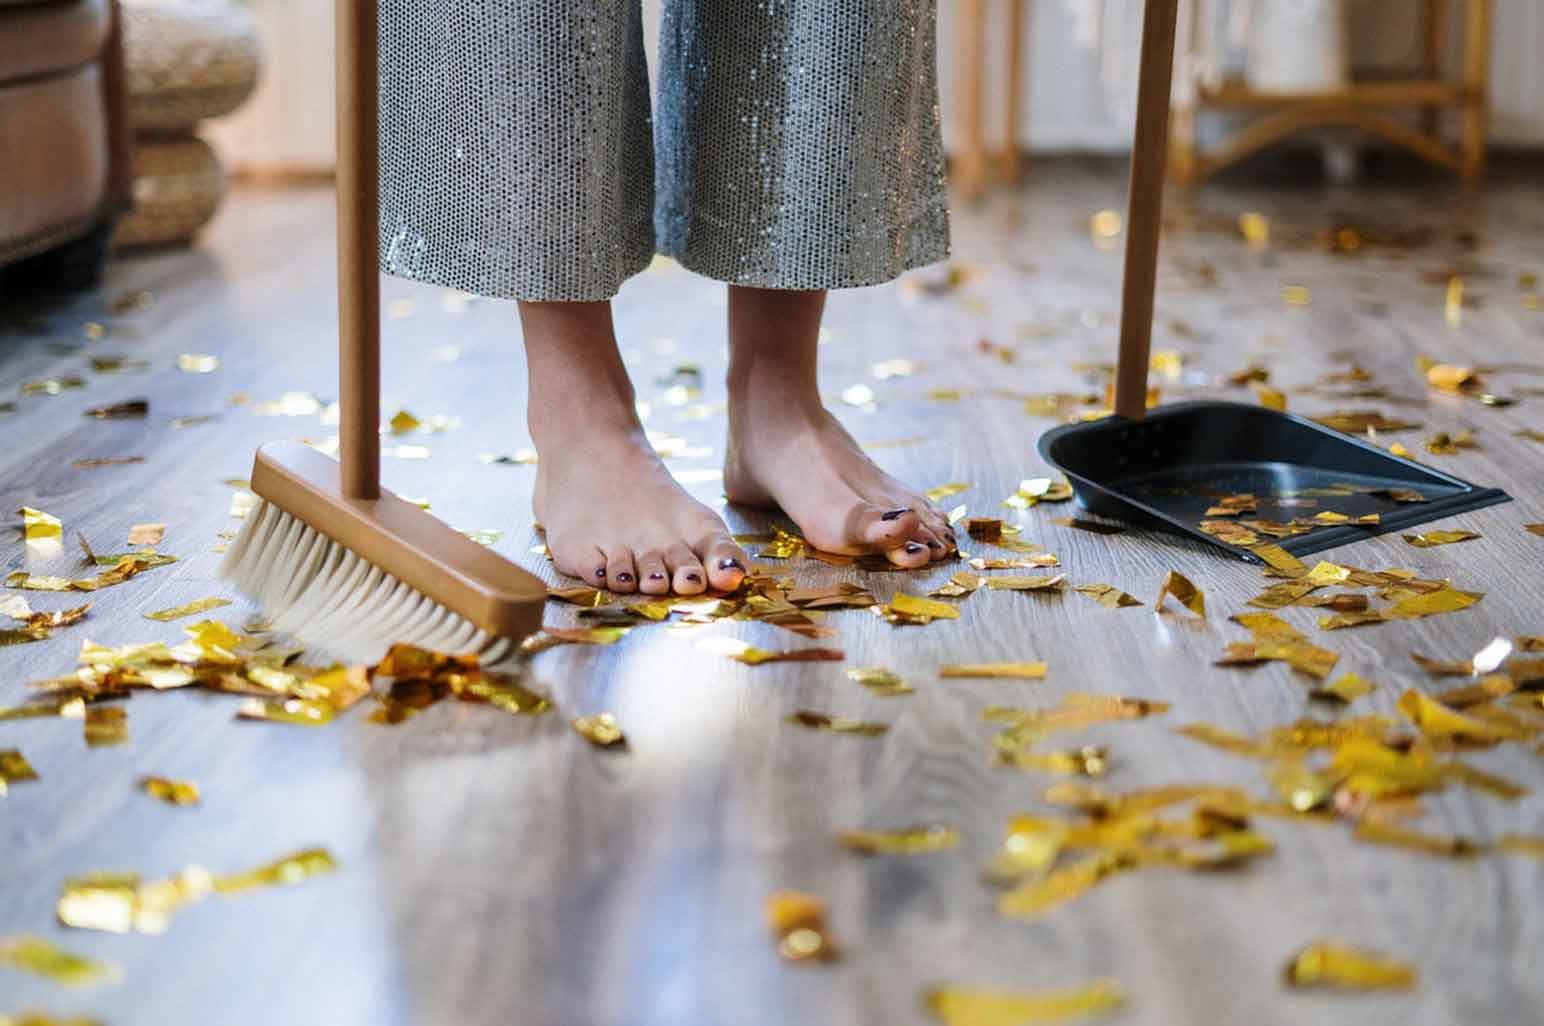 Is Hiring a House Cleaner Worth the Money or Should I Clean It Myself?